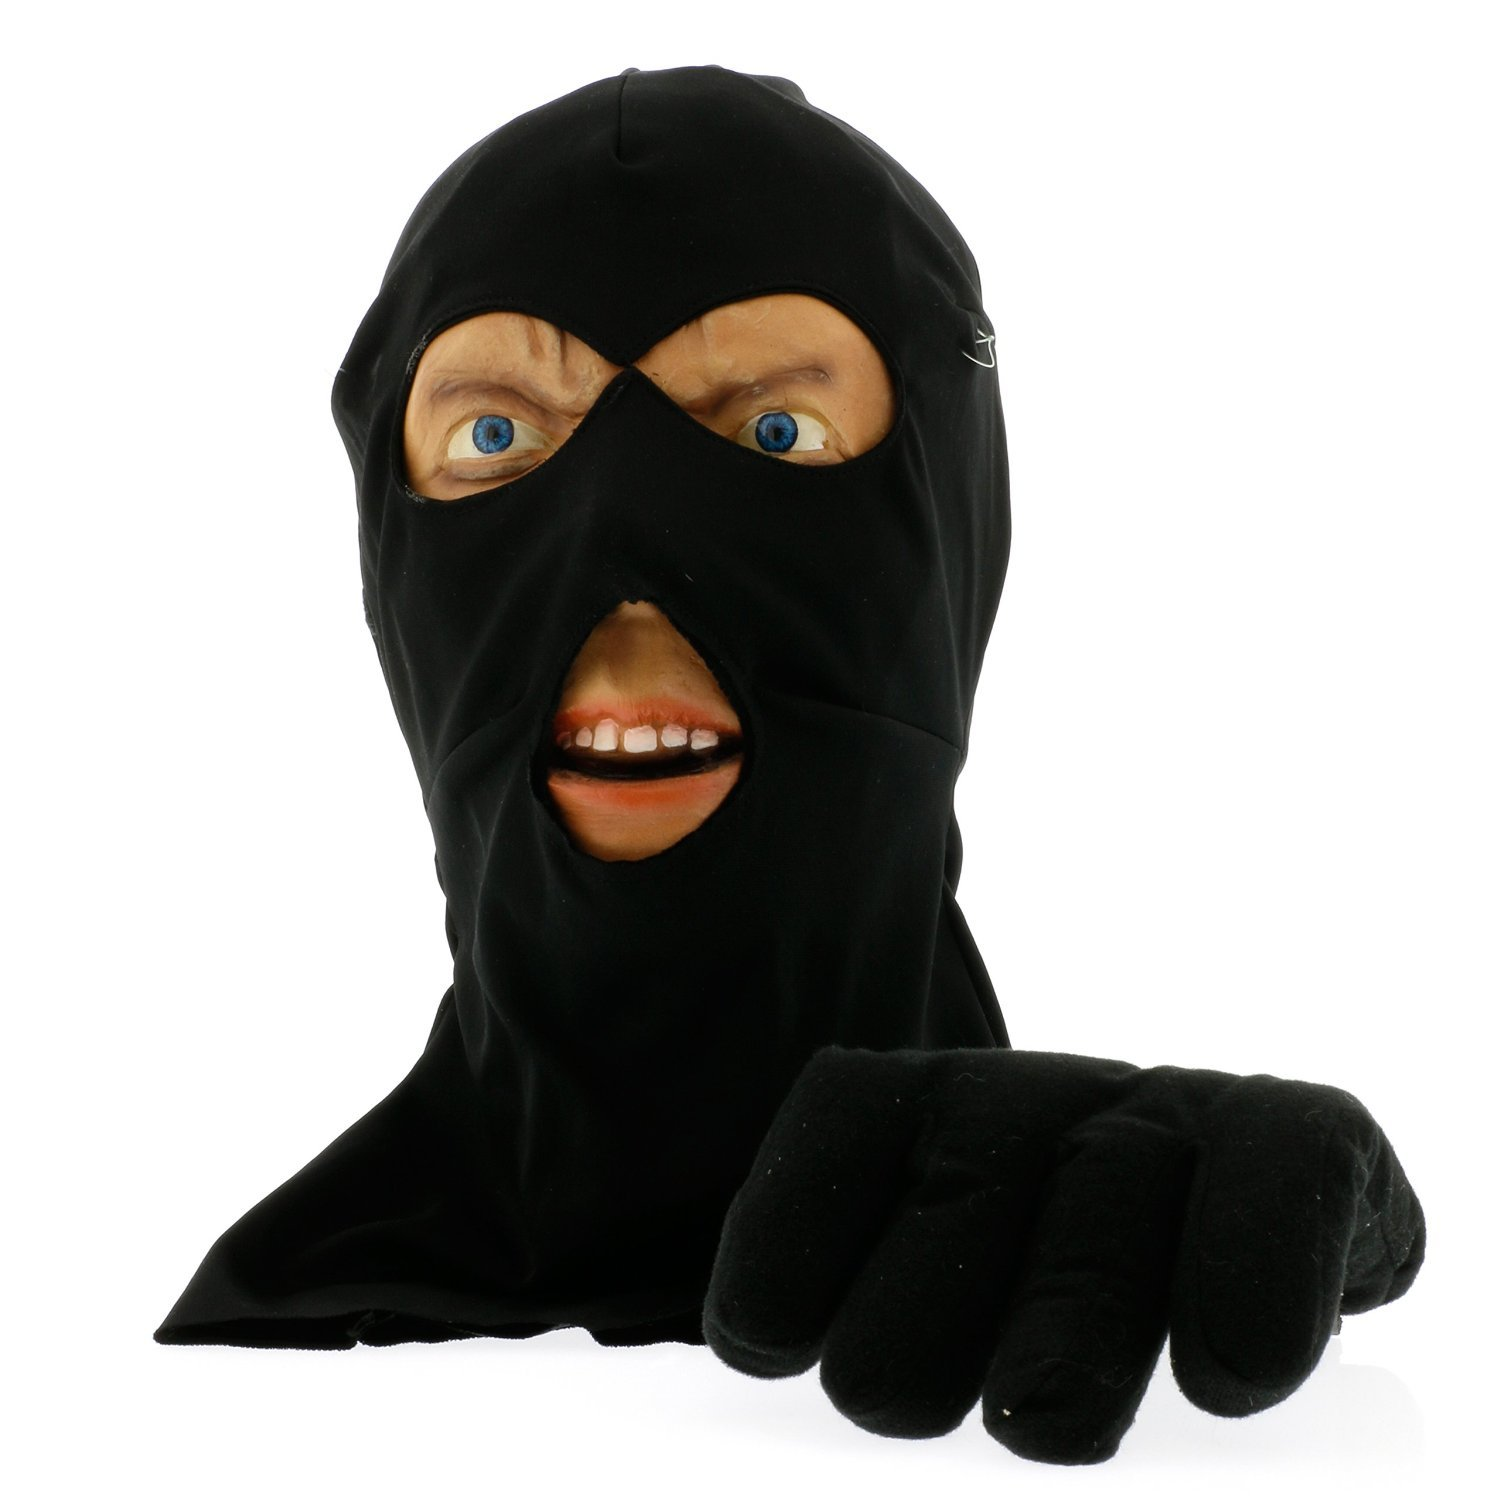 Amazon.com: Scary Peeper Cling Window Mask: Toys & Games